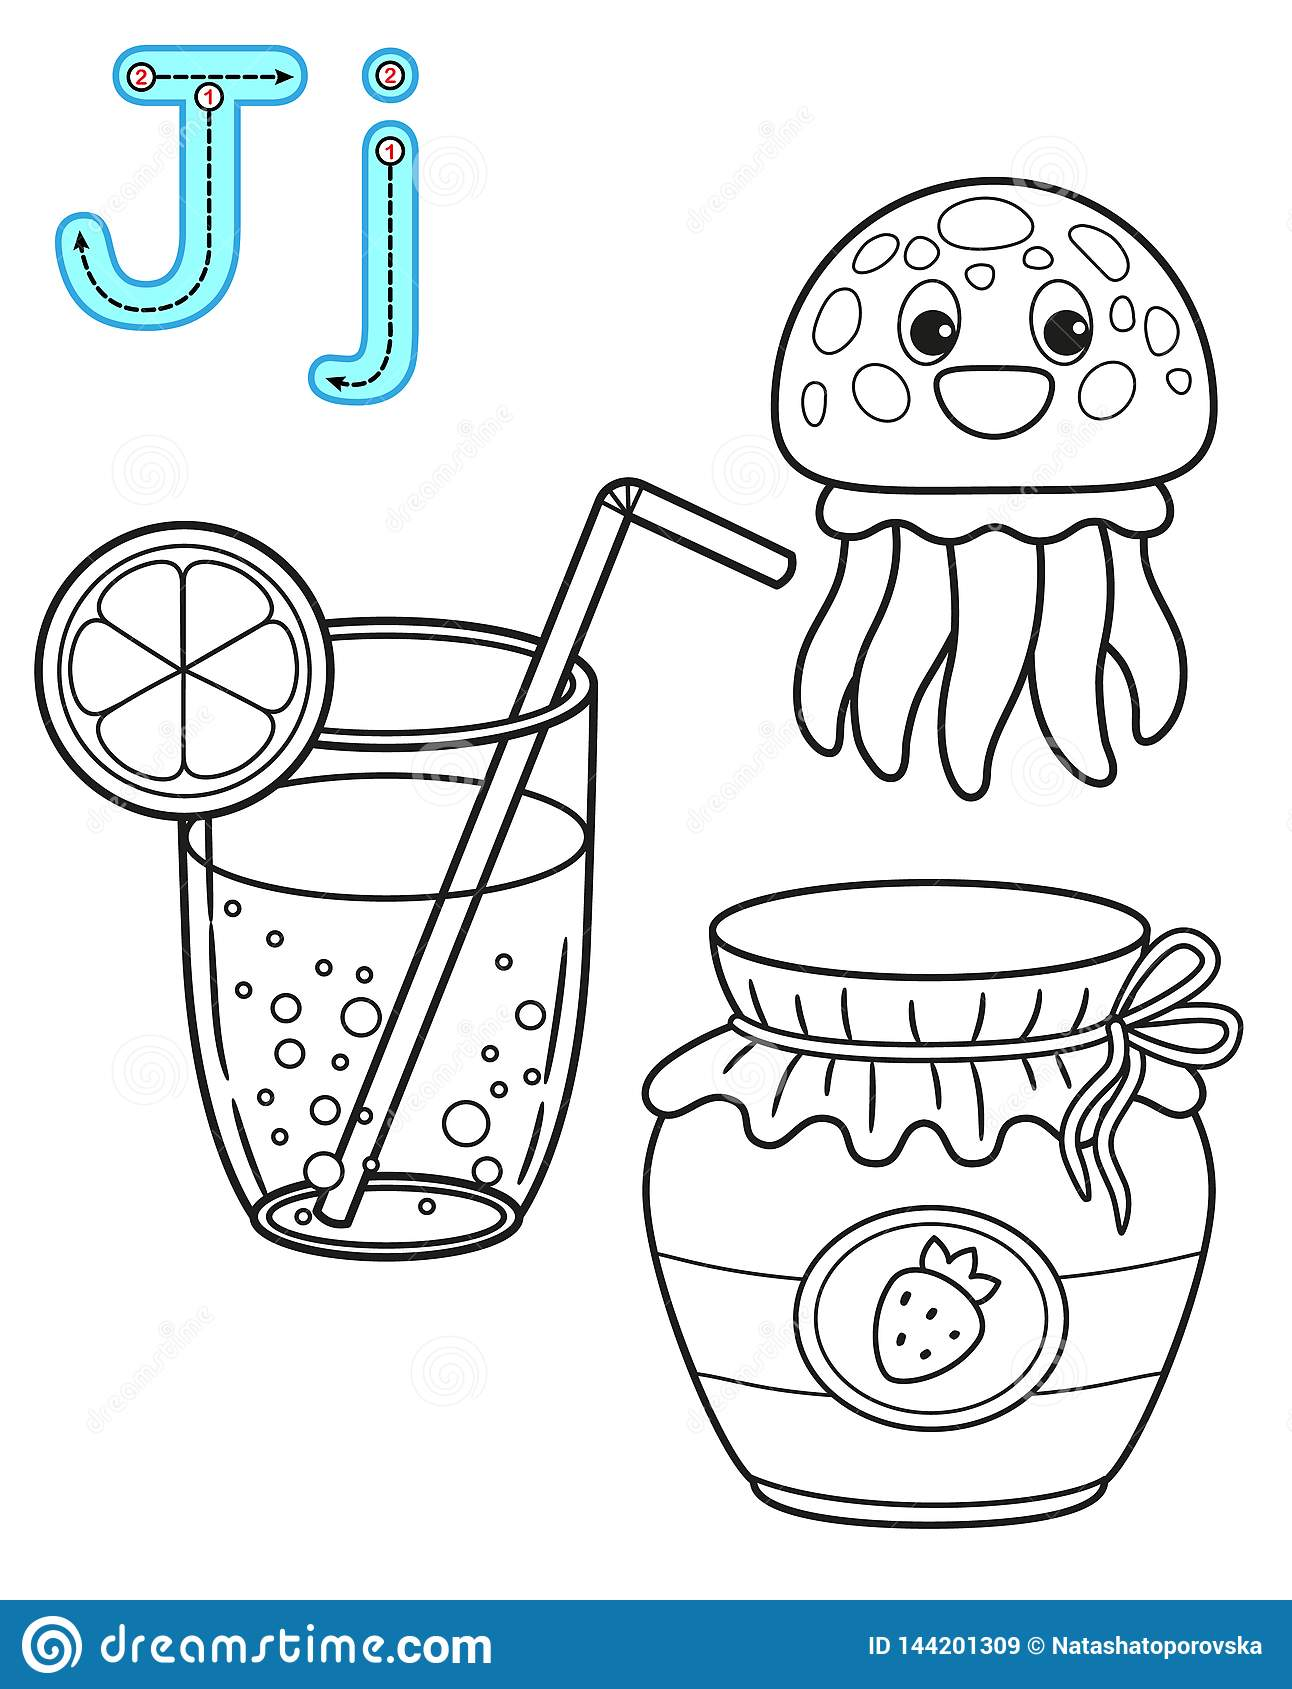 Printable Coloring Page For Kindergarten And Preschool. Card ...